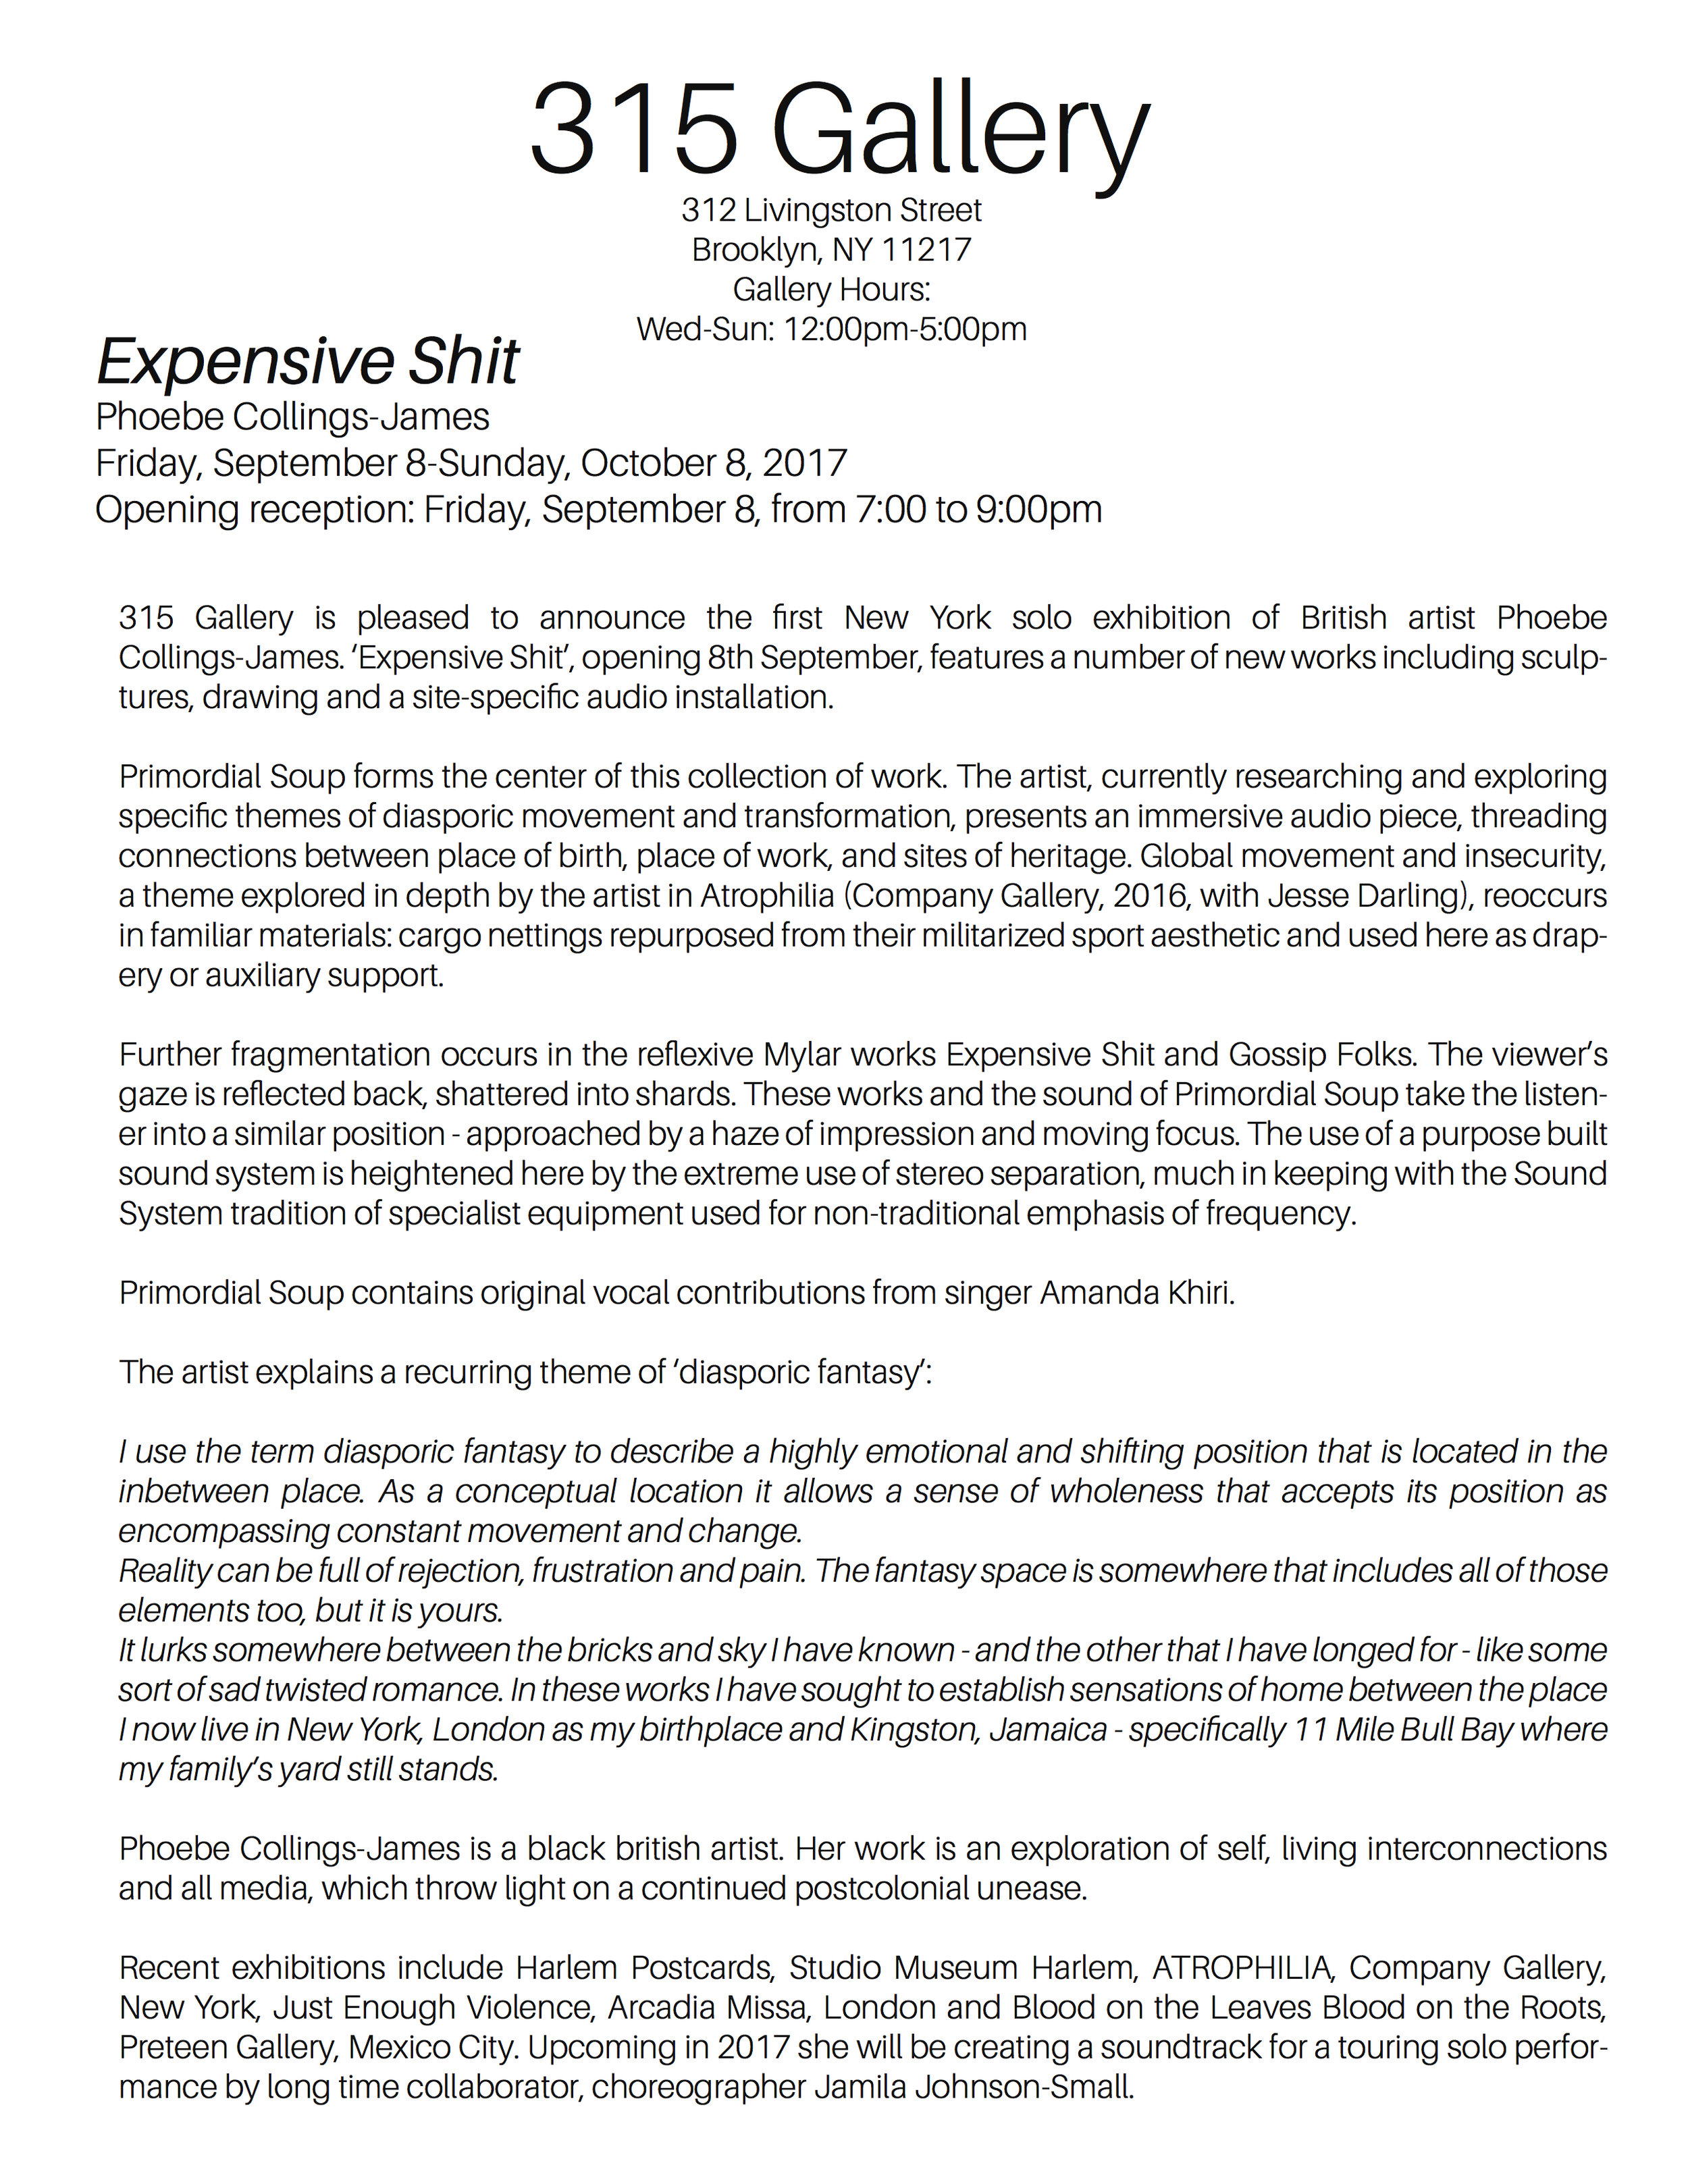 Expensive Shit Press Release.jpg